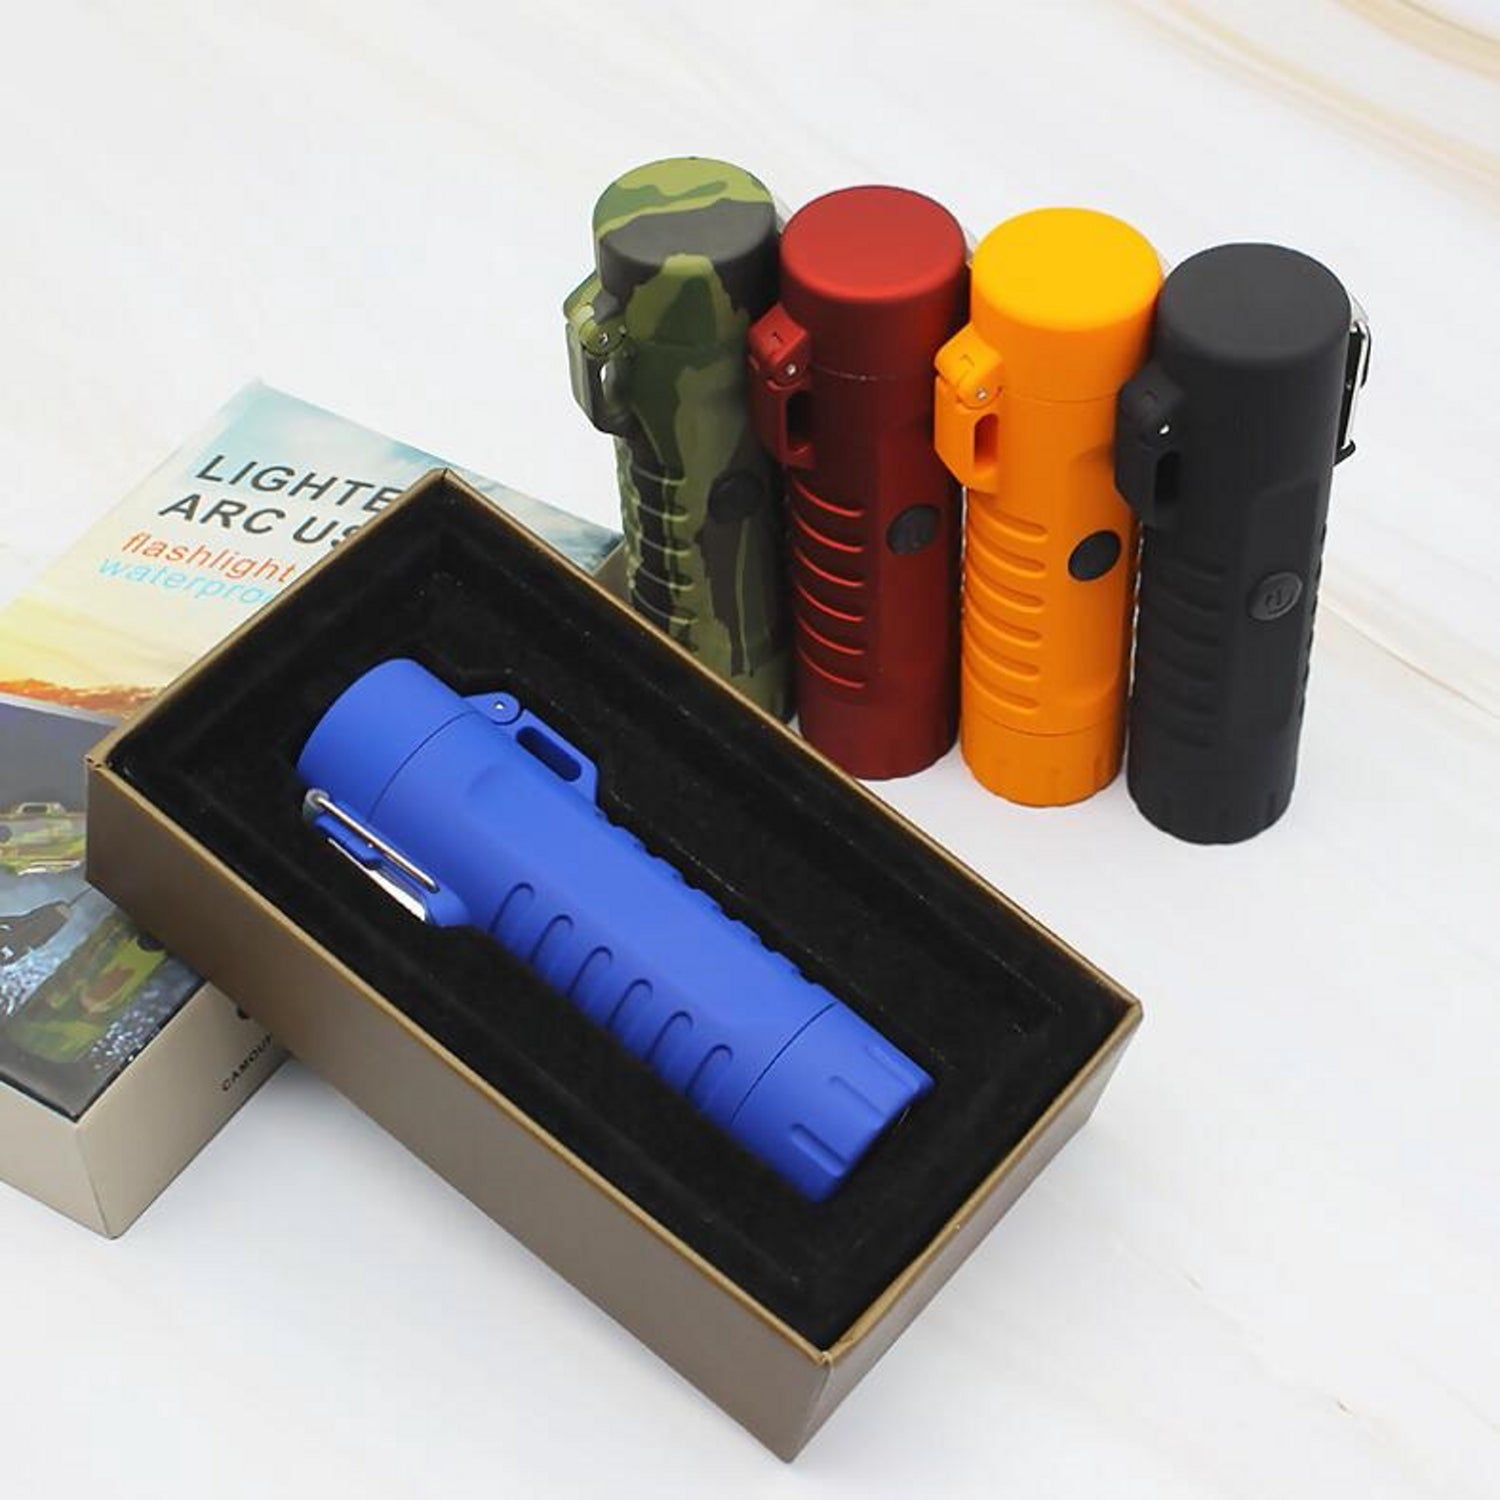 Orange Tactical Waterproof Dual Arc Lighter with LED Tri-Phase Flashlight